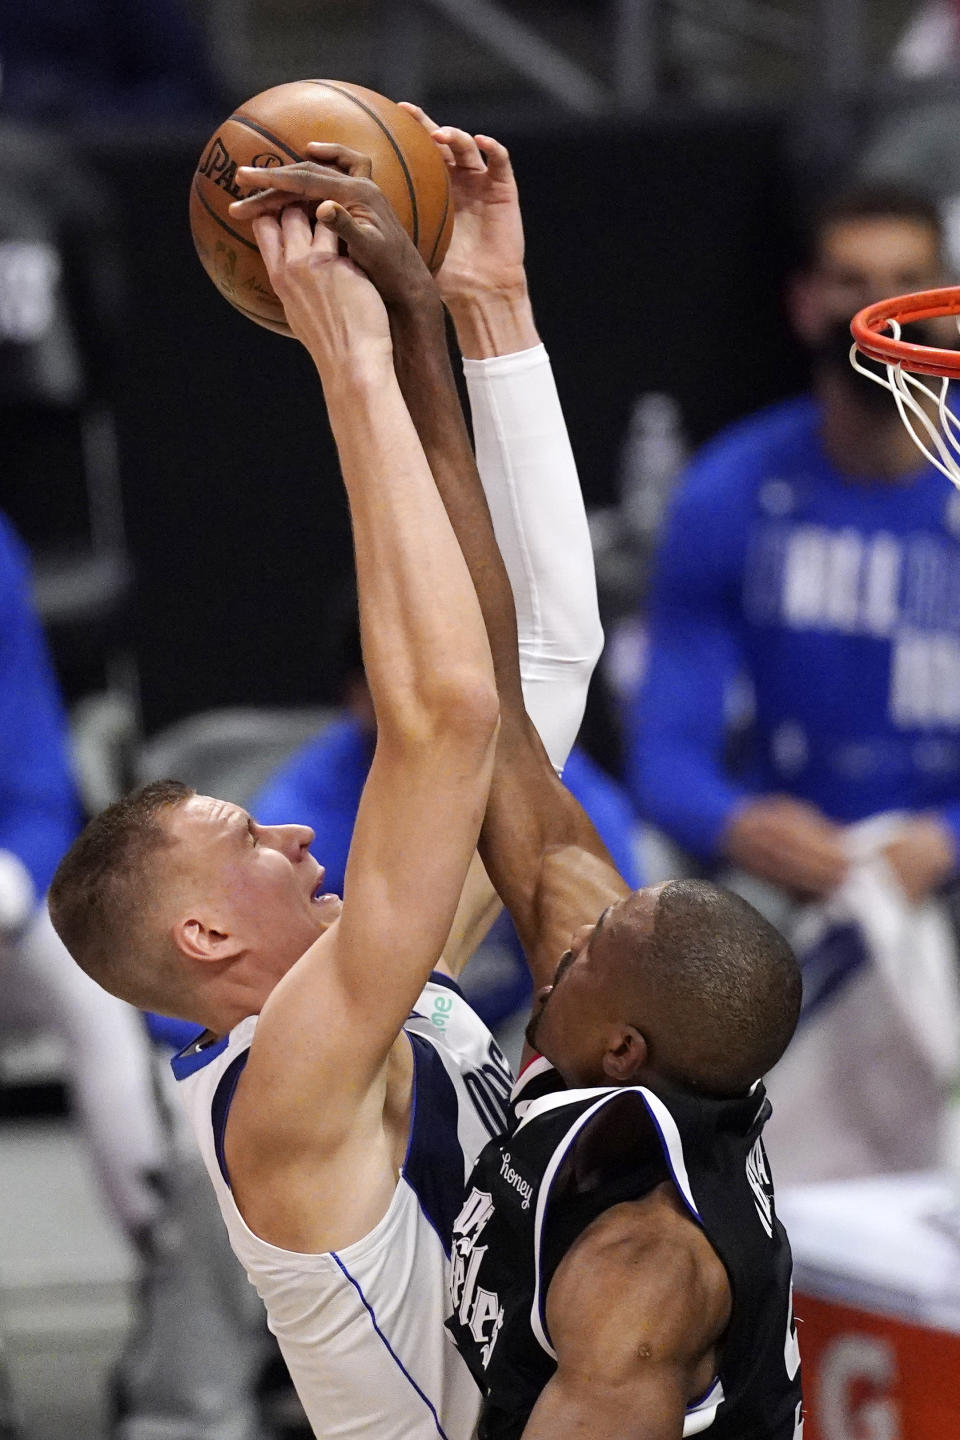 Dallas Mavericks center Kristaps Porzingis, left, shoots as Los Angeles Clippers center Serge Ibaka defends during the first half in Game 1 of an NBA basketball first-round playoff series Saturday, May 22, 2021, in Los Angeles. (AP Photo/Mark J. Terrill)